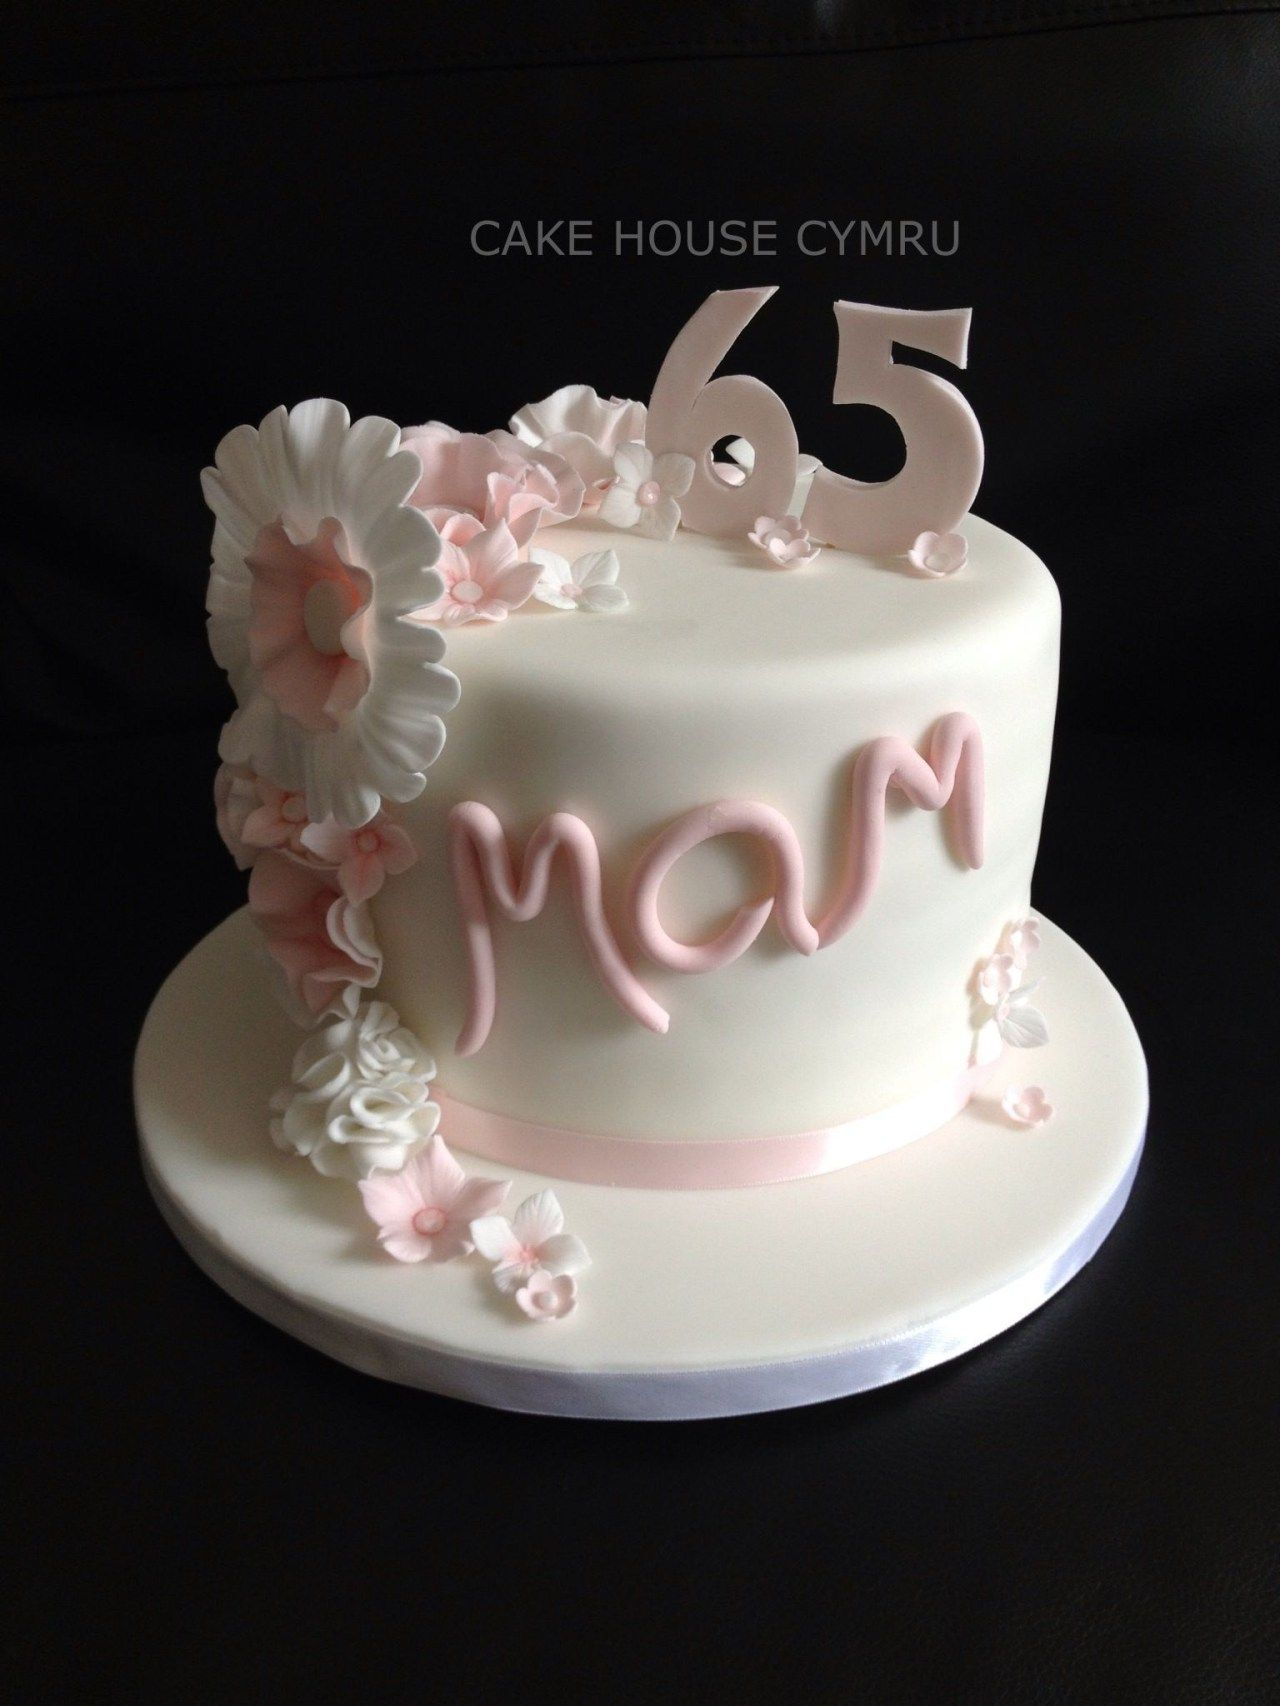 Prime Woman 50 Year Old Birthday Cake Ideas The Cake Boutique Personalised Birthday Cards Veneteletsinfo